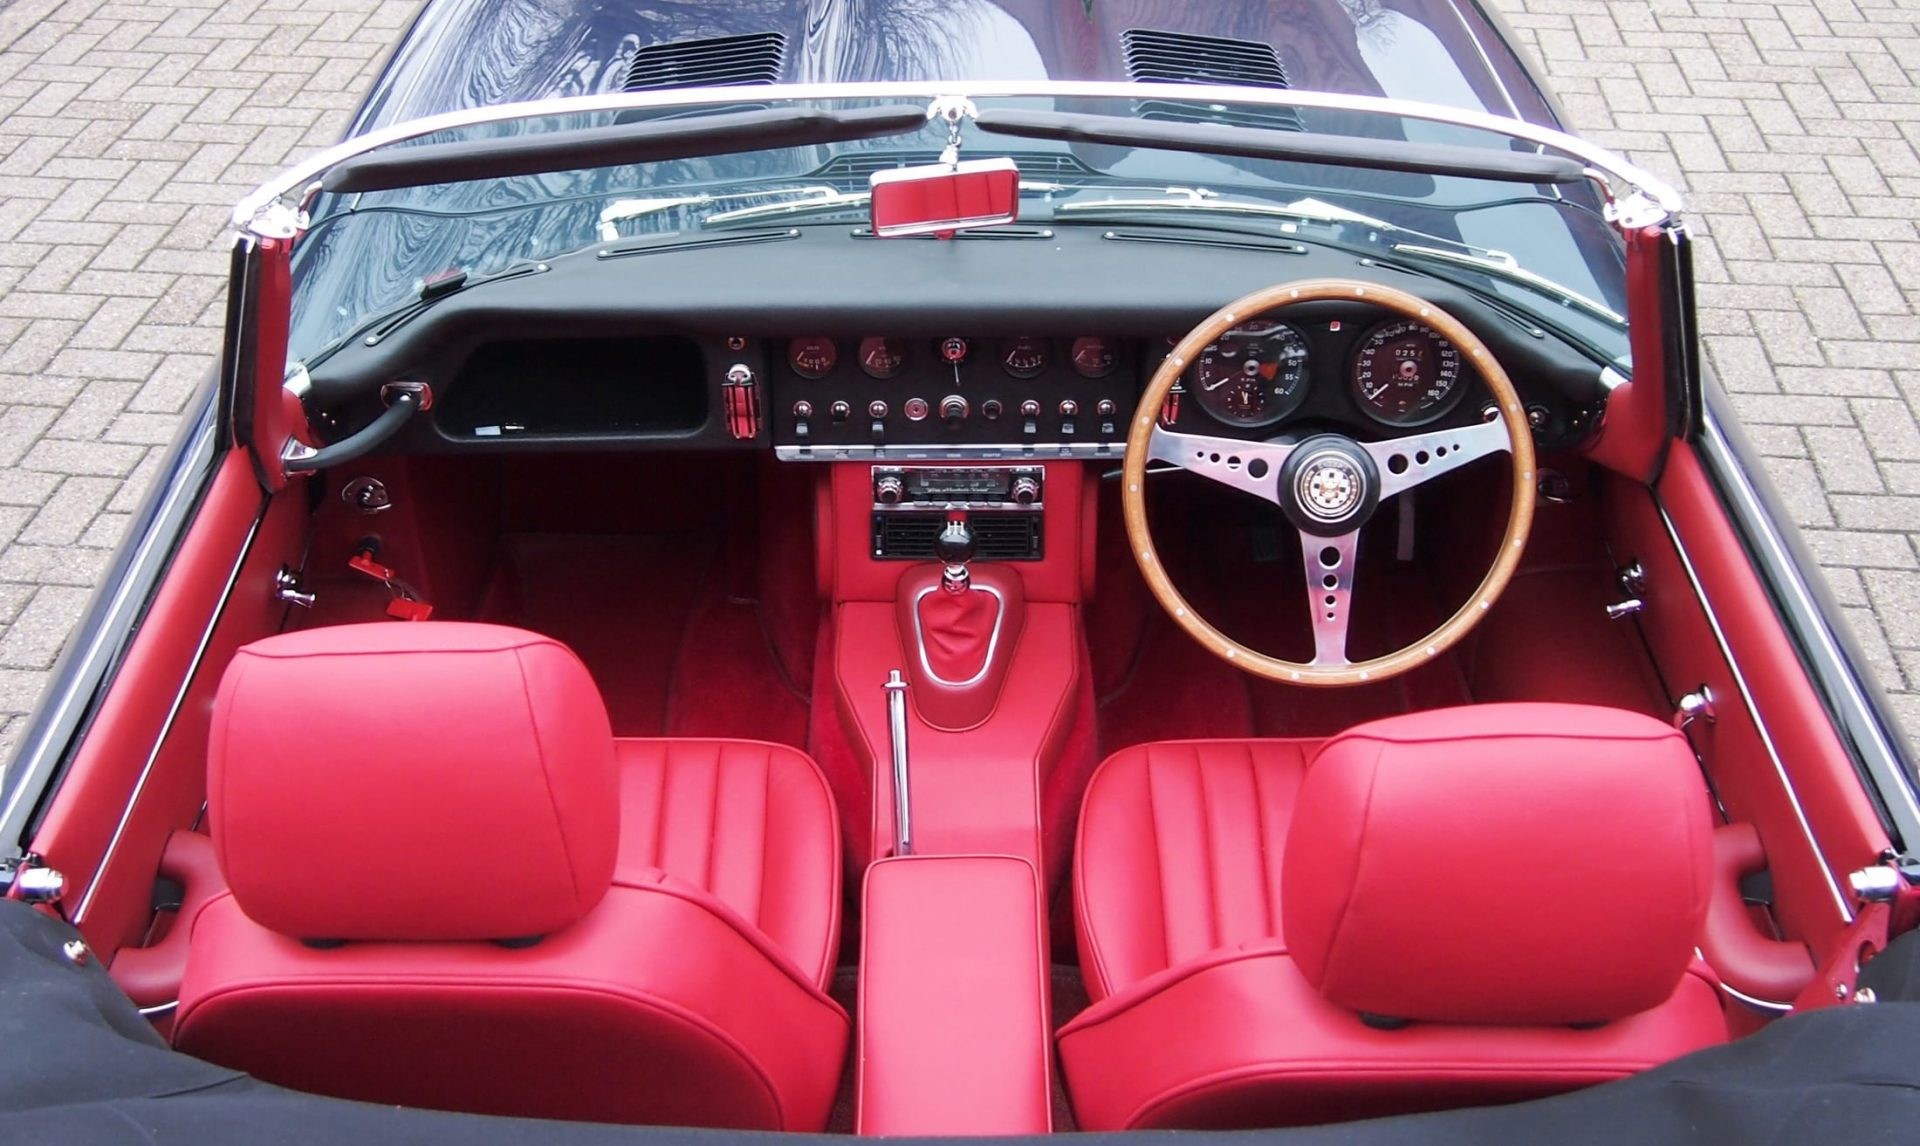 Interior red trim and leather seats inside classic convertible car